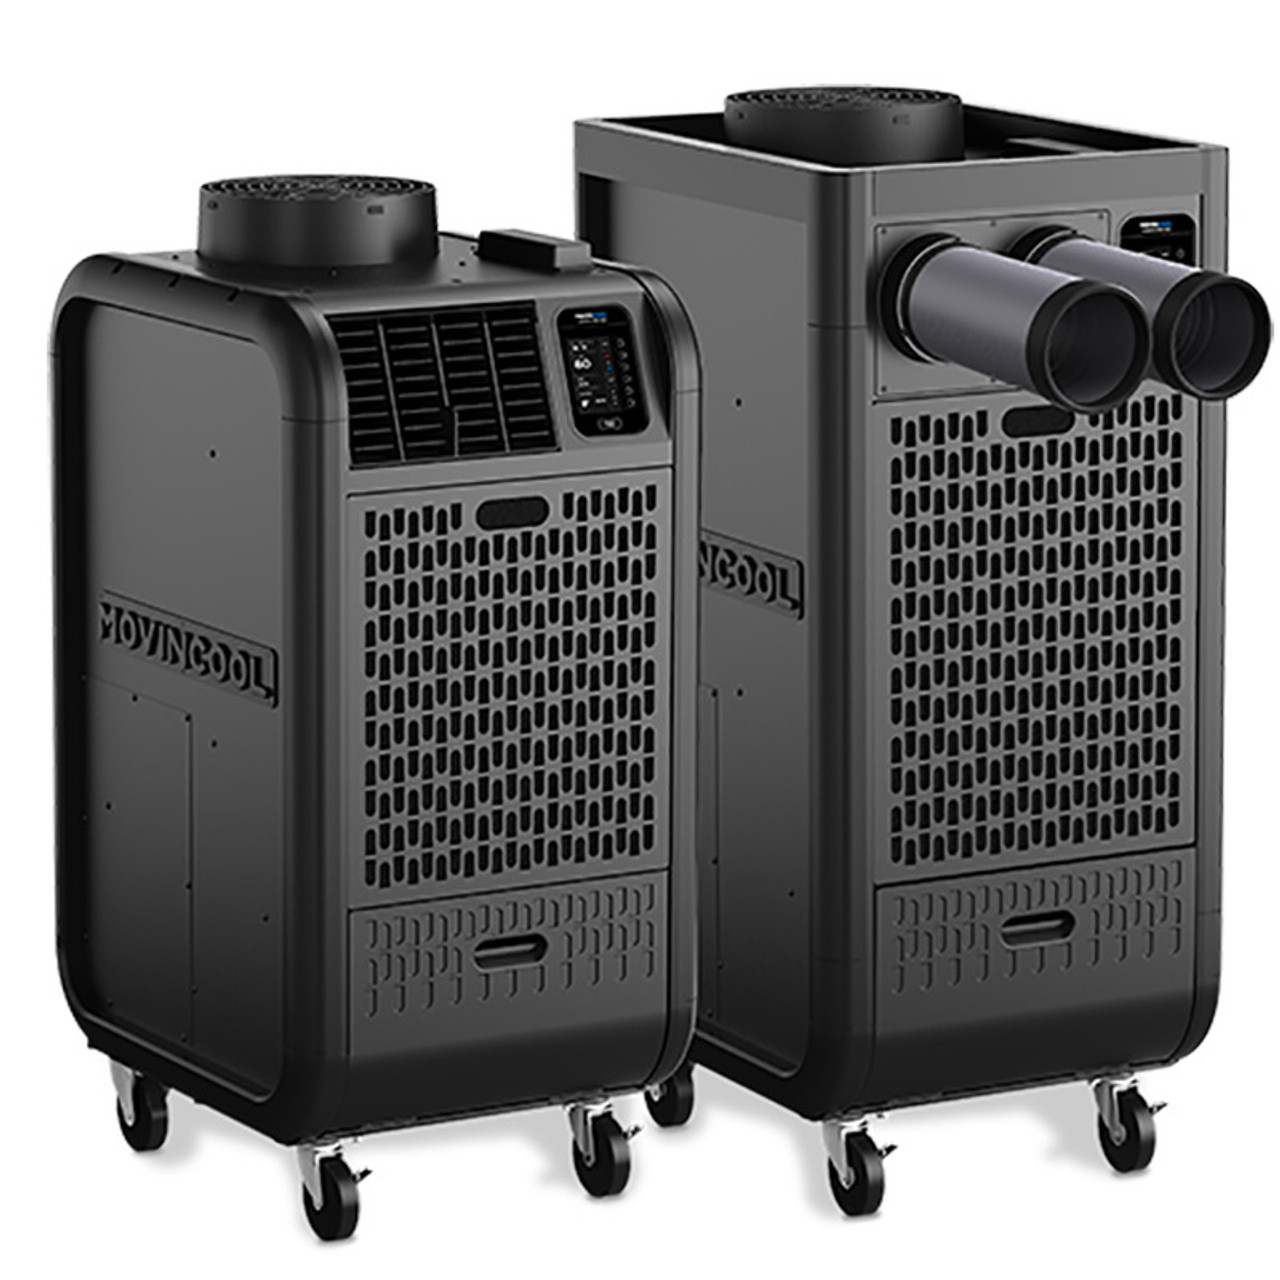 Air Cooled Portable Air Conditioners